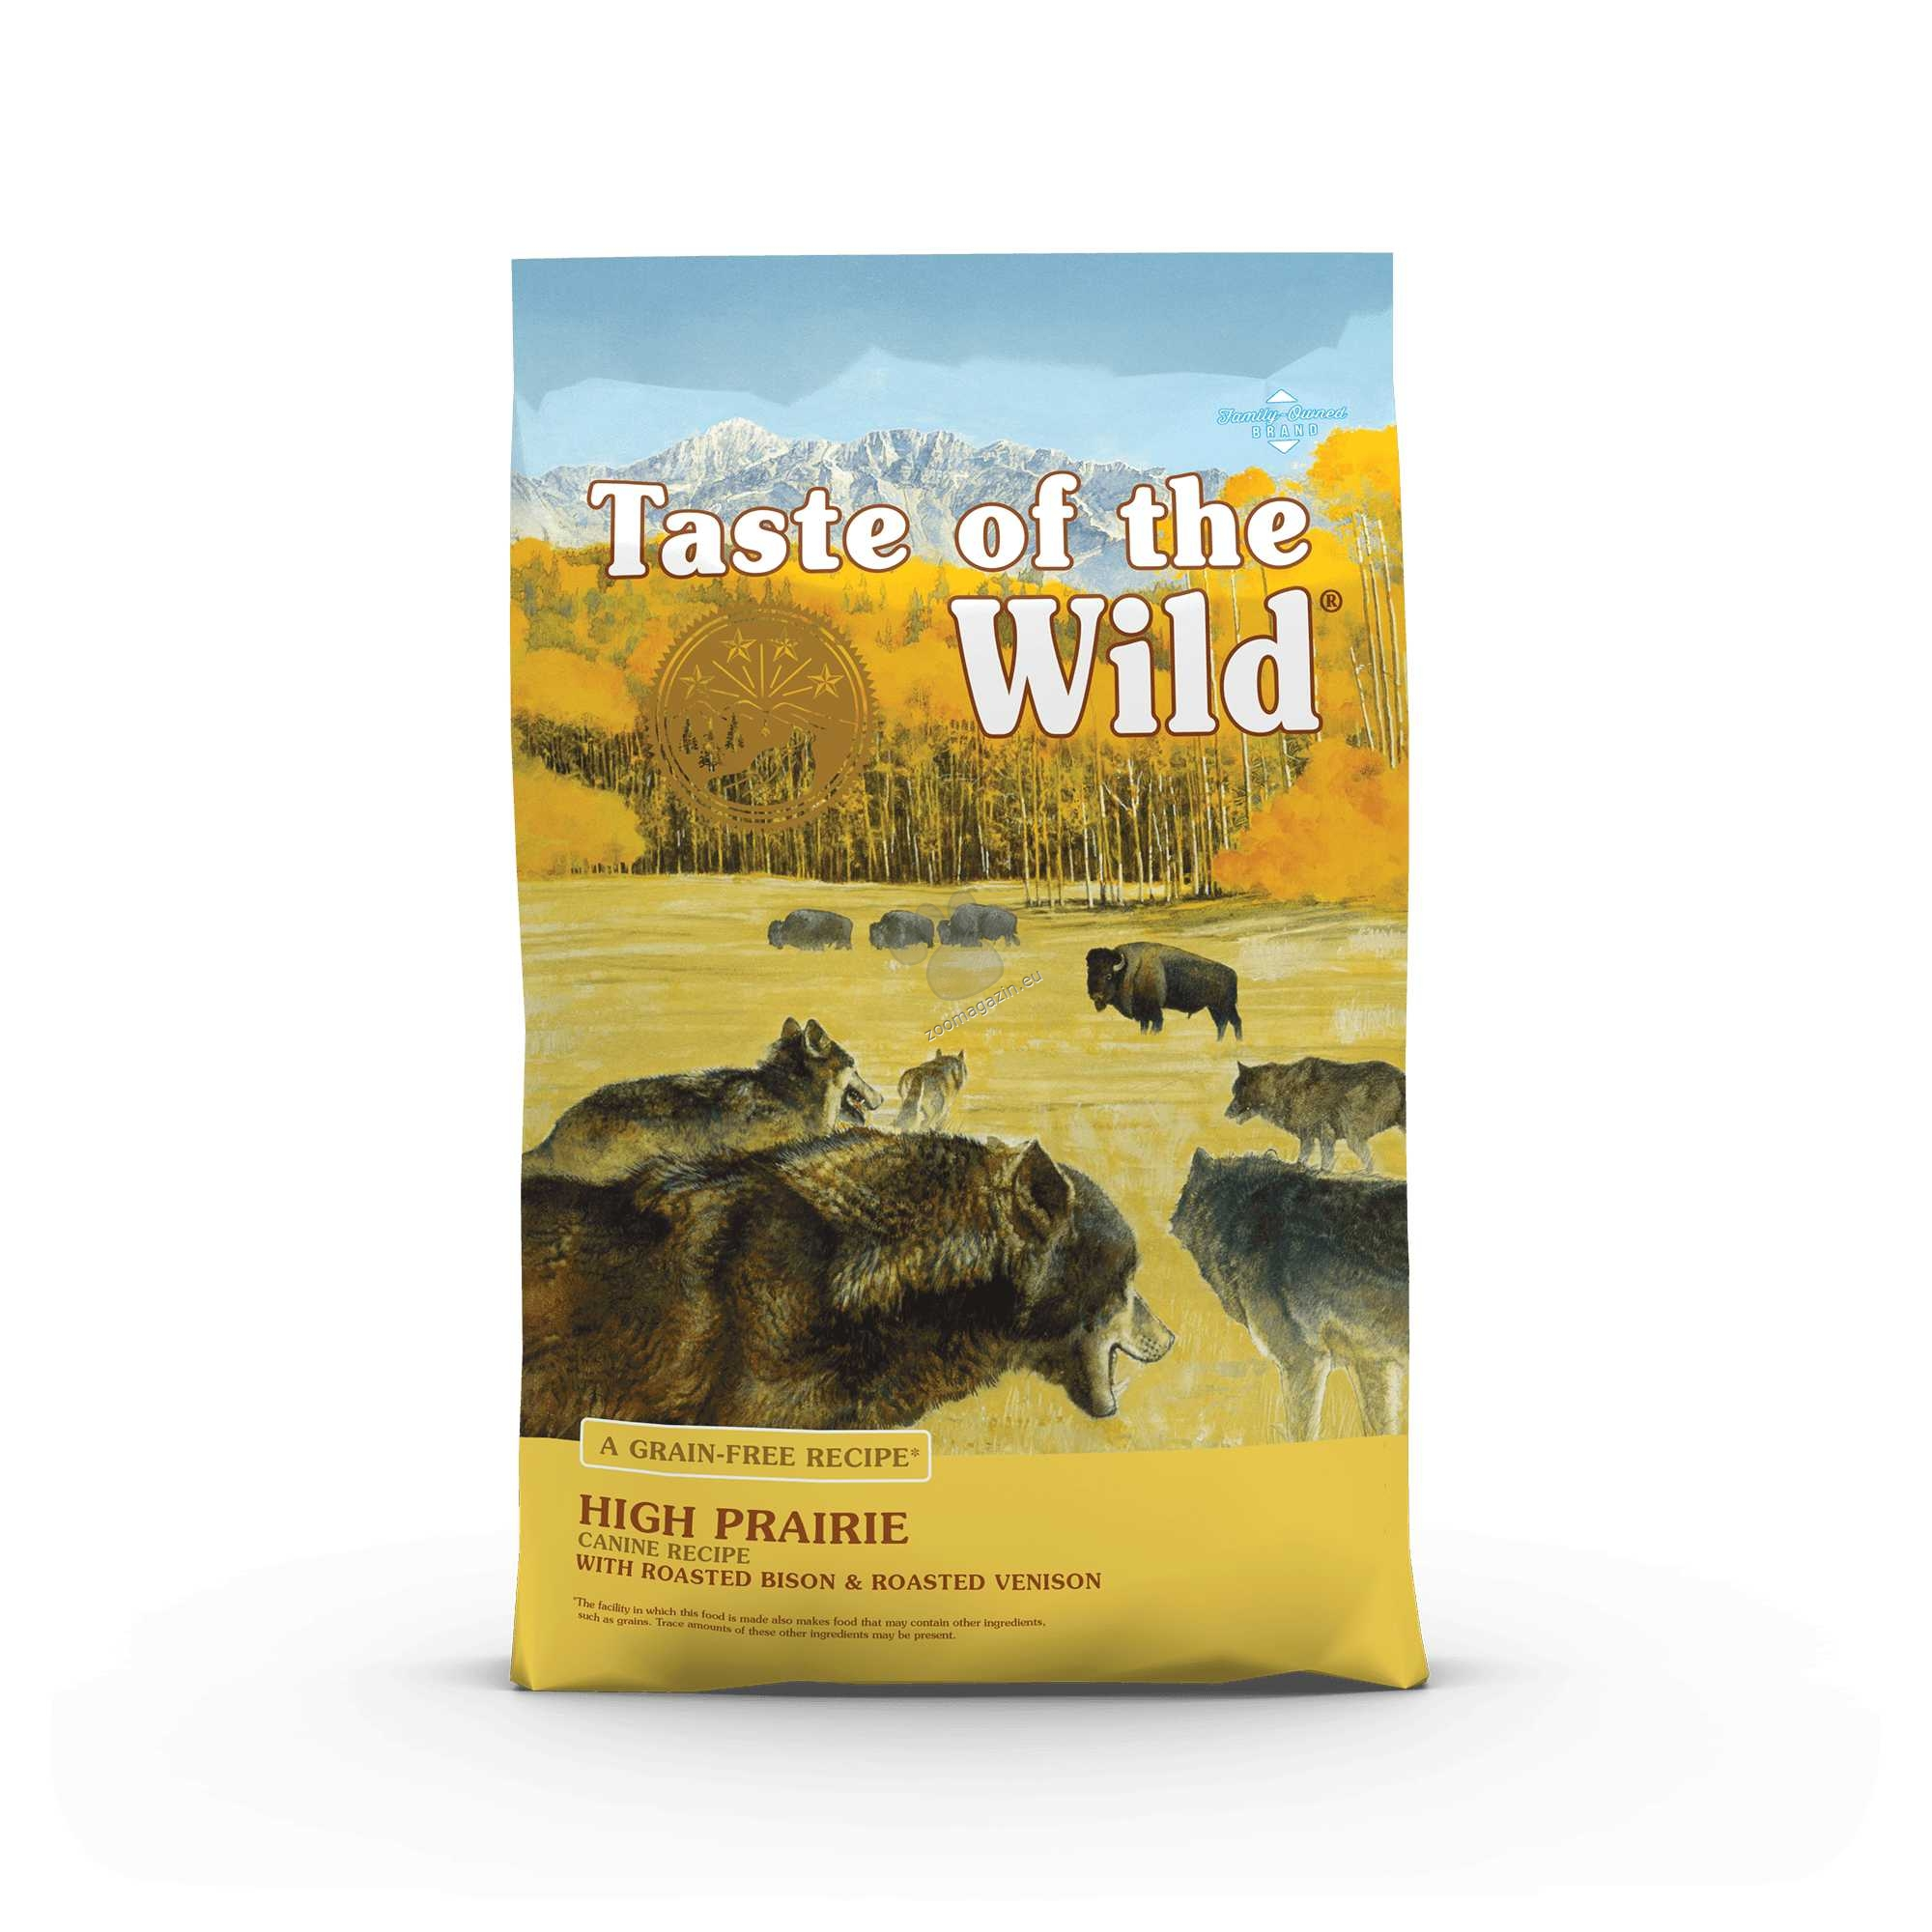 Taste of the Wild High Prairie Canine Formula with Roasted Bison & Roasted Venison - храна за кучета с печено еленско и бизонско месо 13 кг.